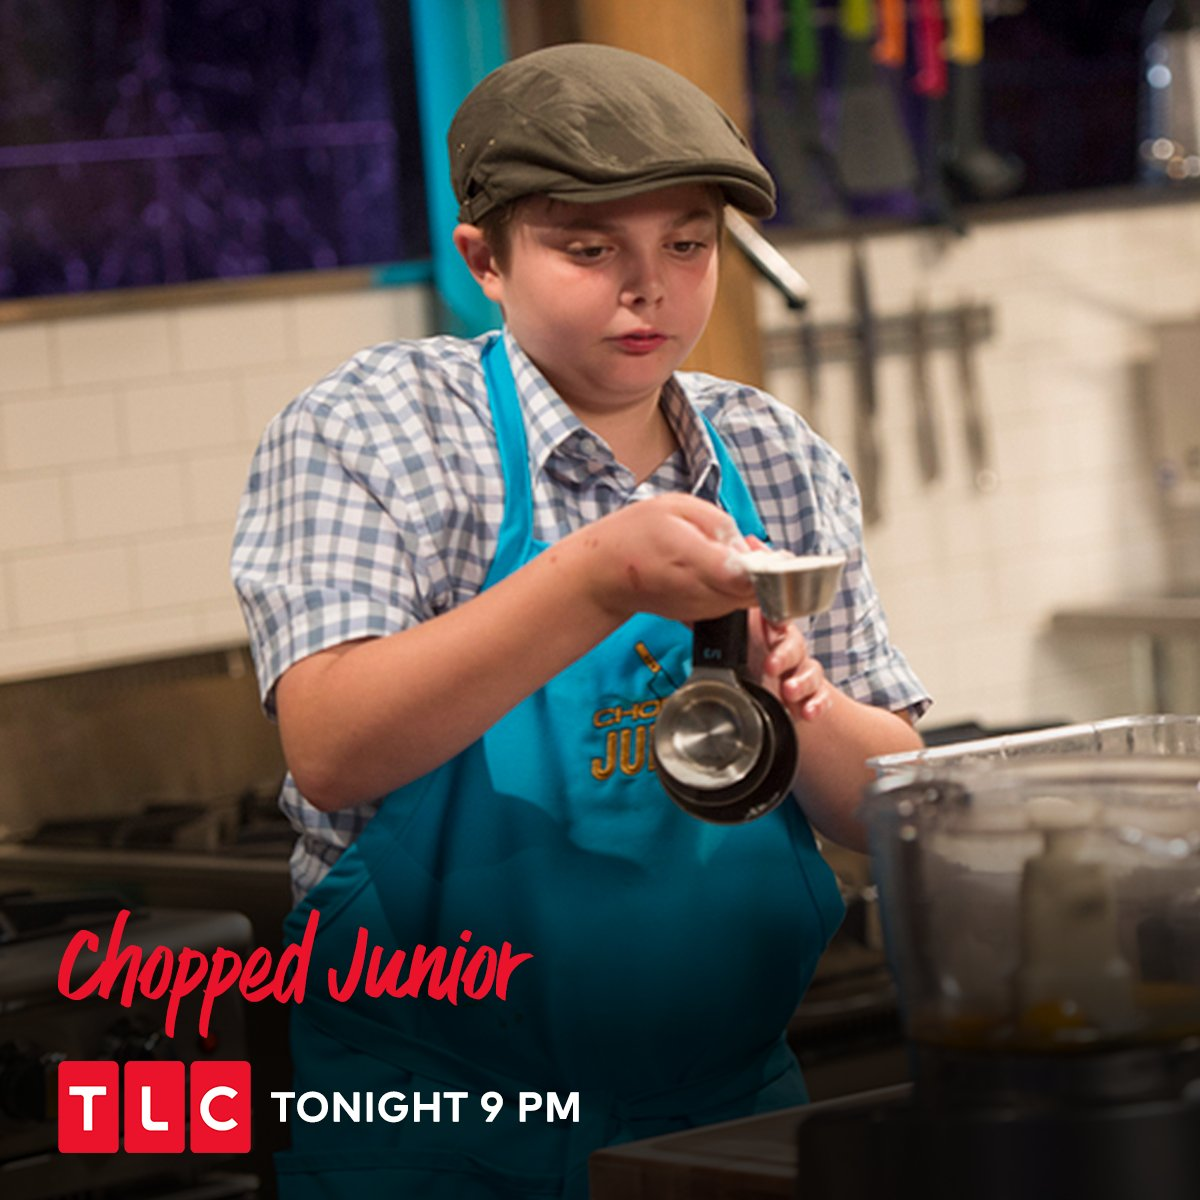 It's all about the pasta-bilities in the Chopped kitchen today as the juniors whip up their signature pasta dishes. Tune-in to #ChoppedJunior, tonight at 9 PM, only on TLC.   #TLC #TLCIndia #food #foodlove #chefs #kids #kidchefs #foodies<br>http://pic.twitter.com/UhmwoXd0tA